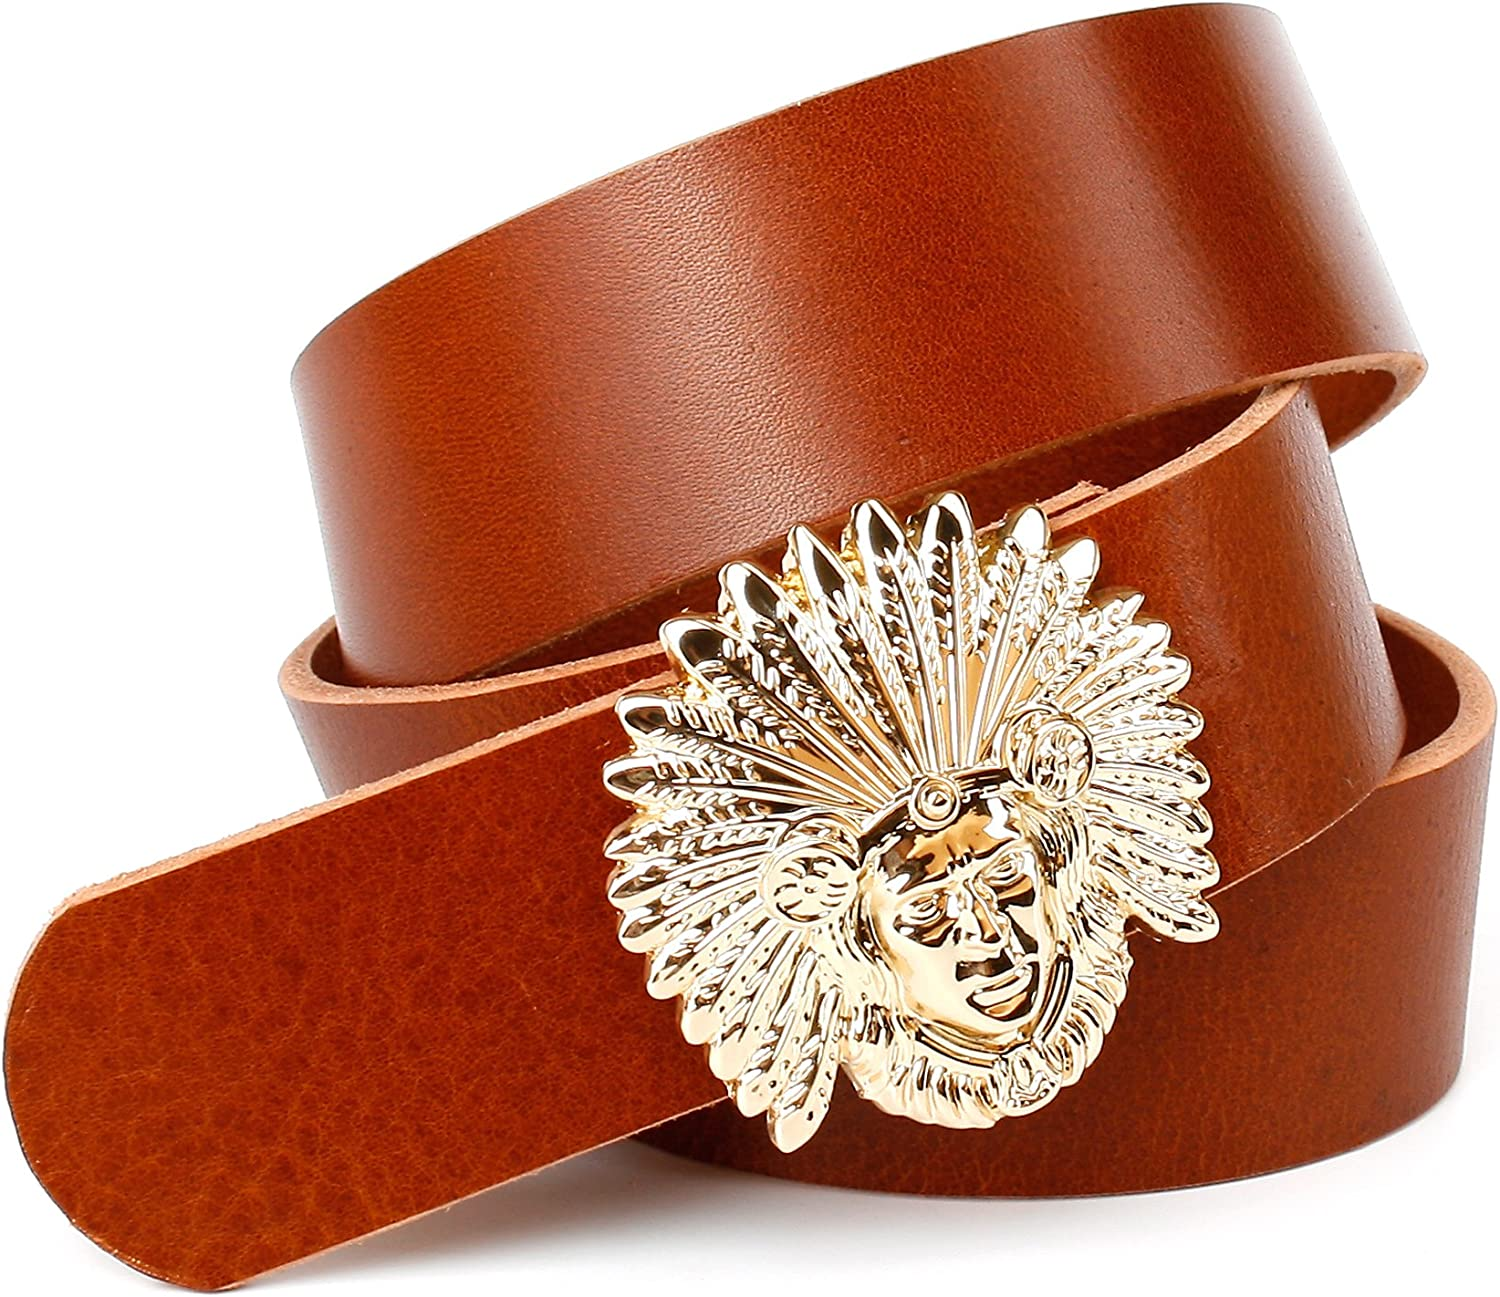 Anthoni Crown unisex belt cognac leather 1,6 , with INDIAN buckle 3444  4ID130